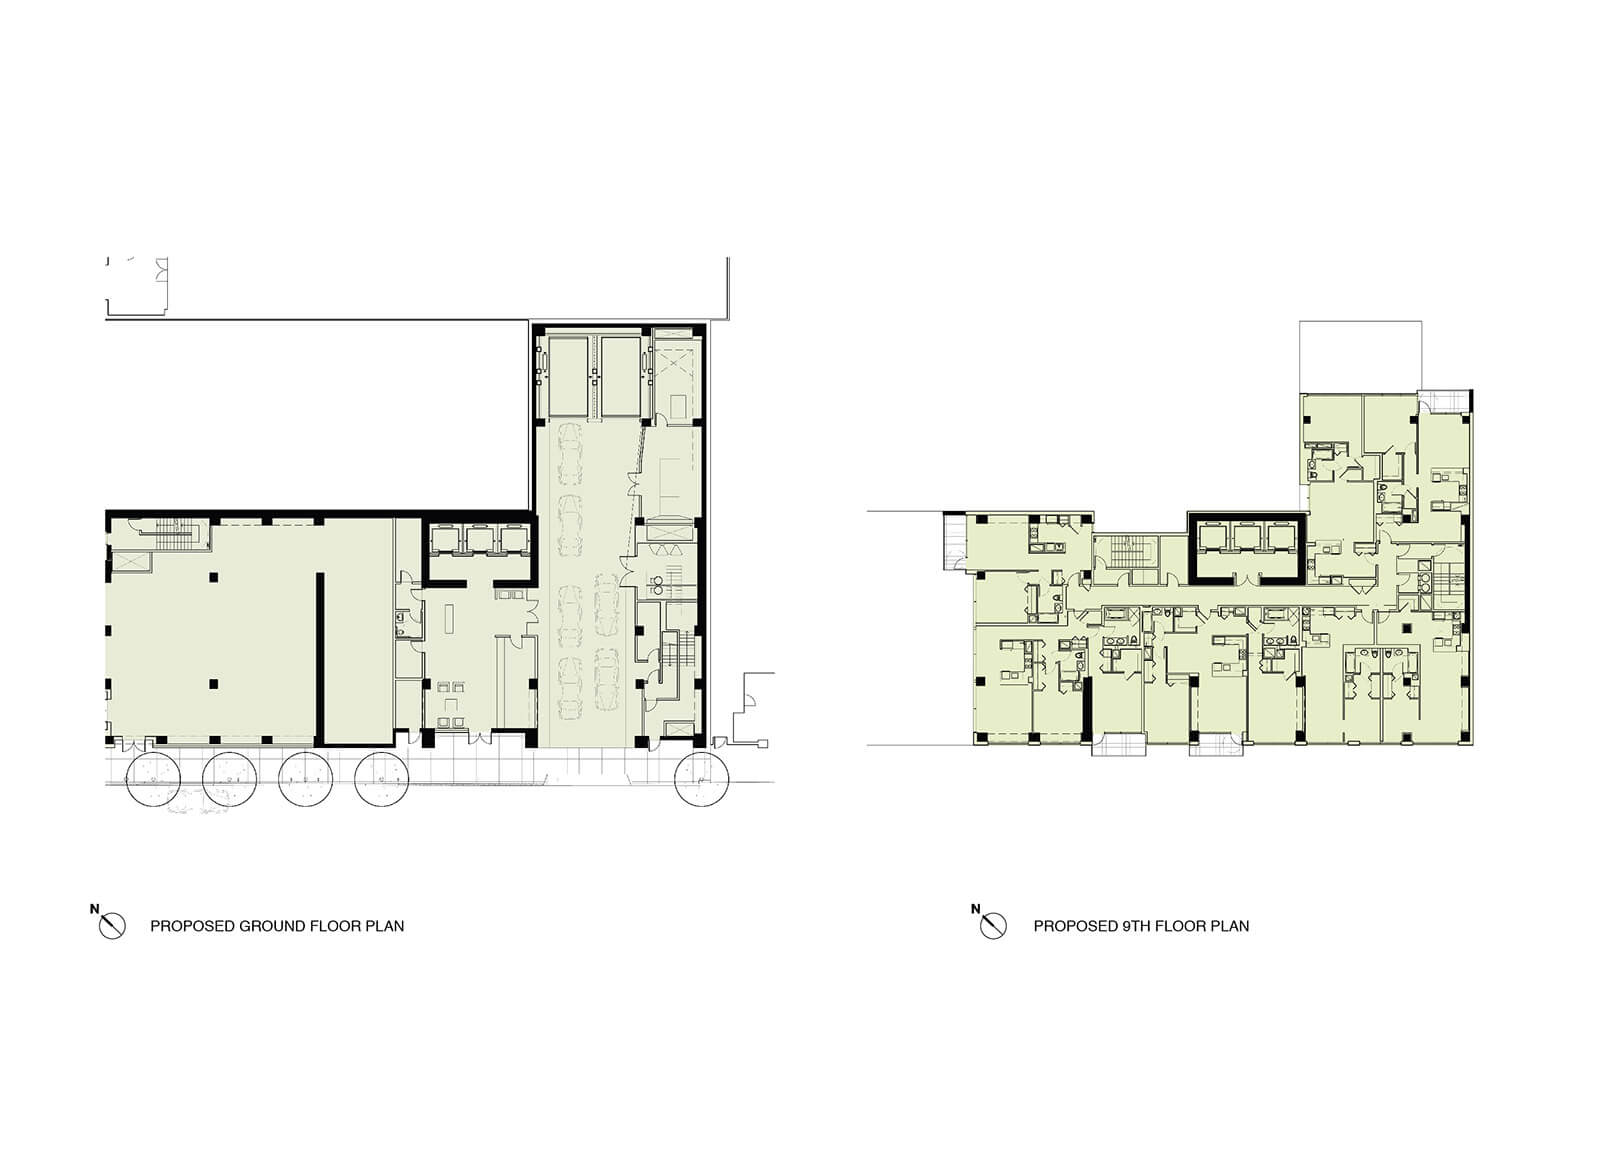 studio vara multifamily one hawthorne drawing floor plan